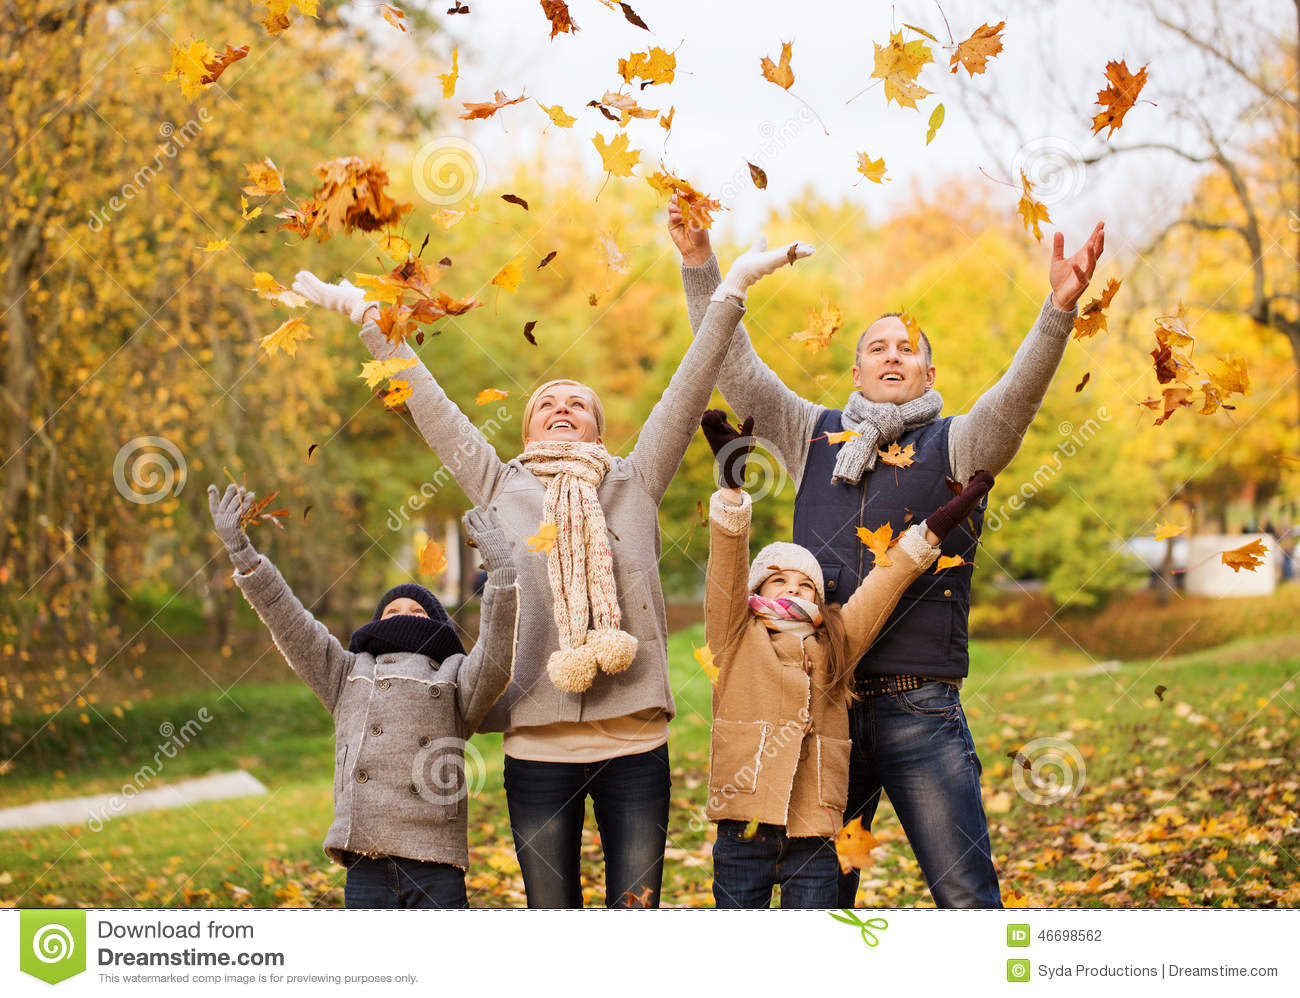 India Wallpaper 3d Happy Family Playing With Autumn Leaves In Park Stock